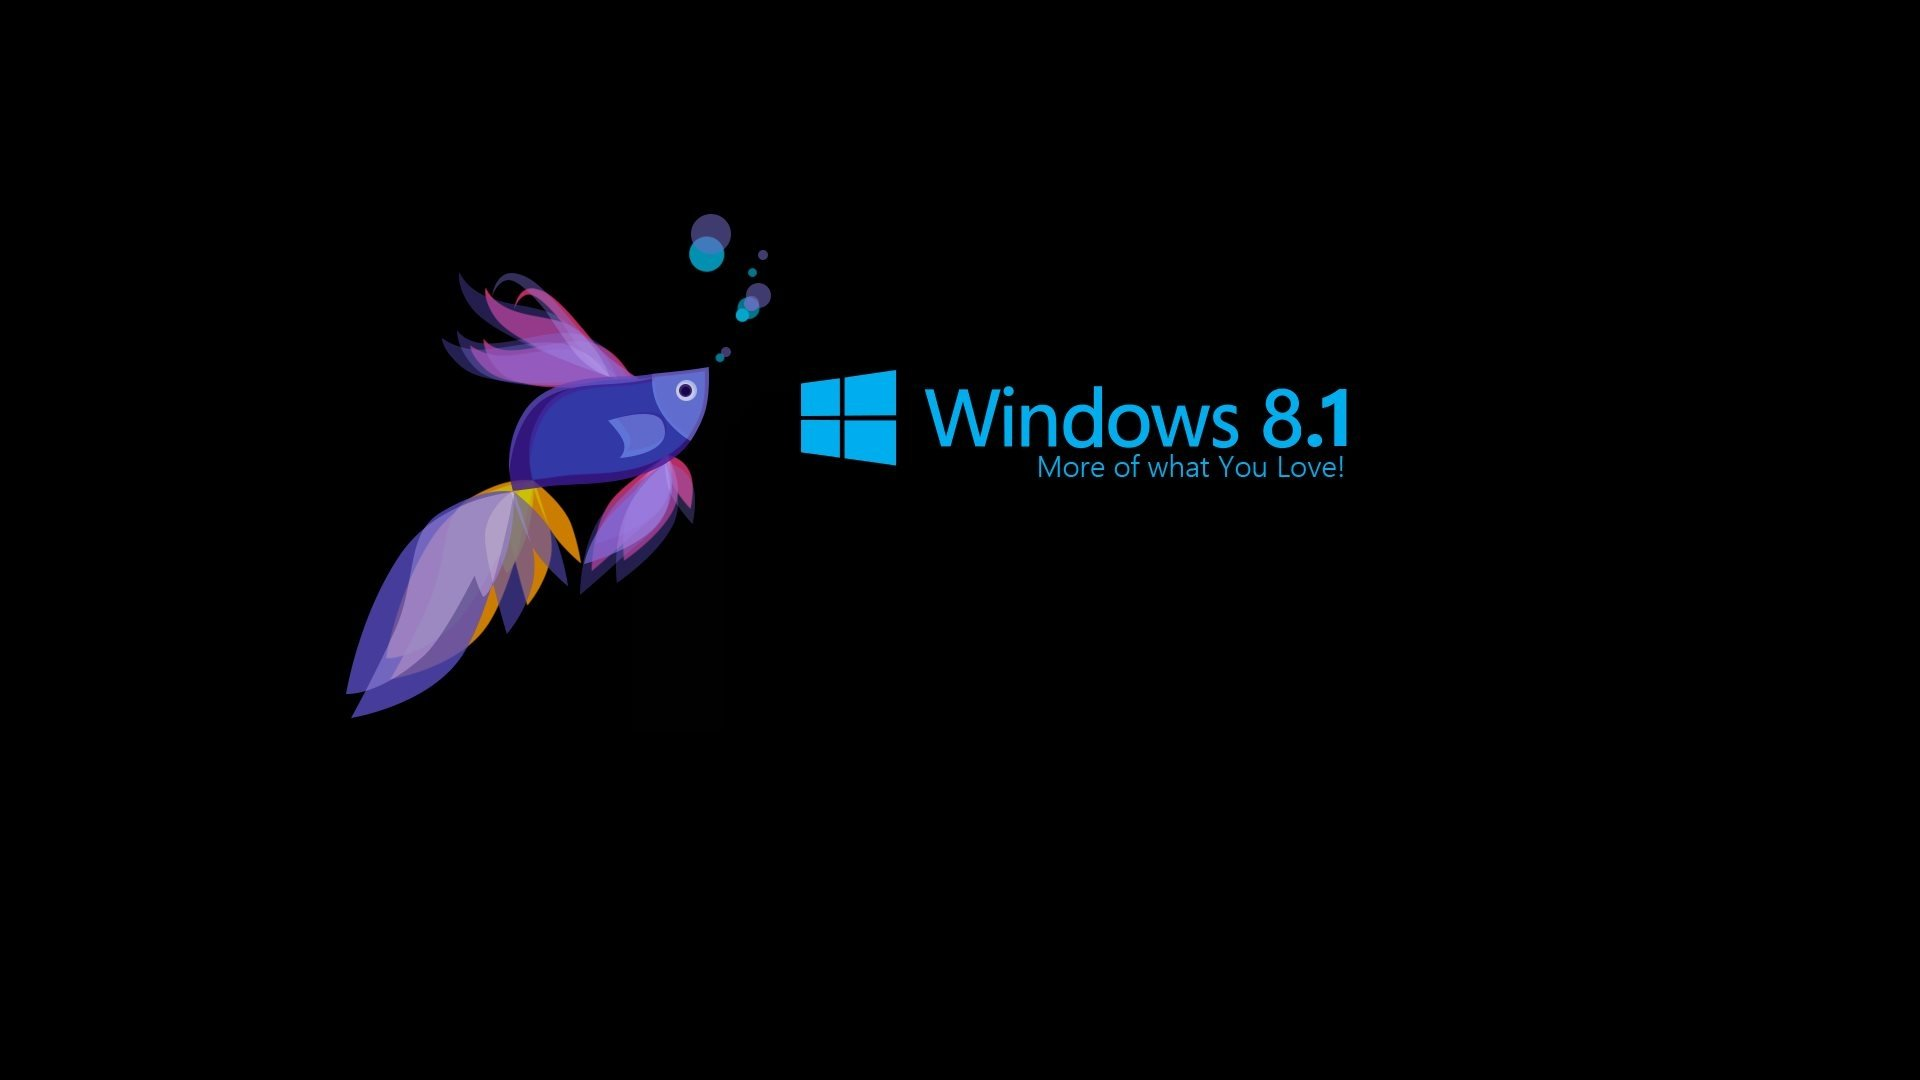 11 Windows 8 1 Hd Wallpapers Background Images Wallpaper Abyss